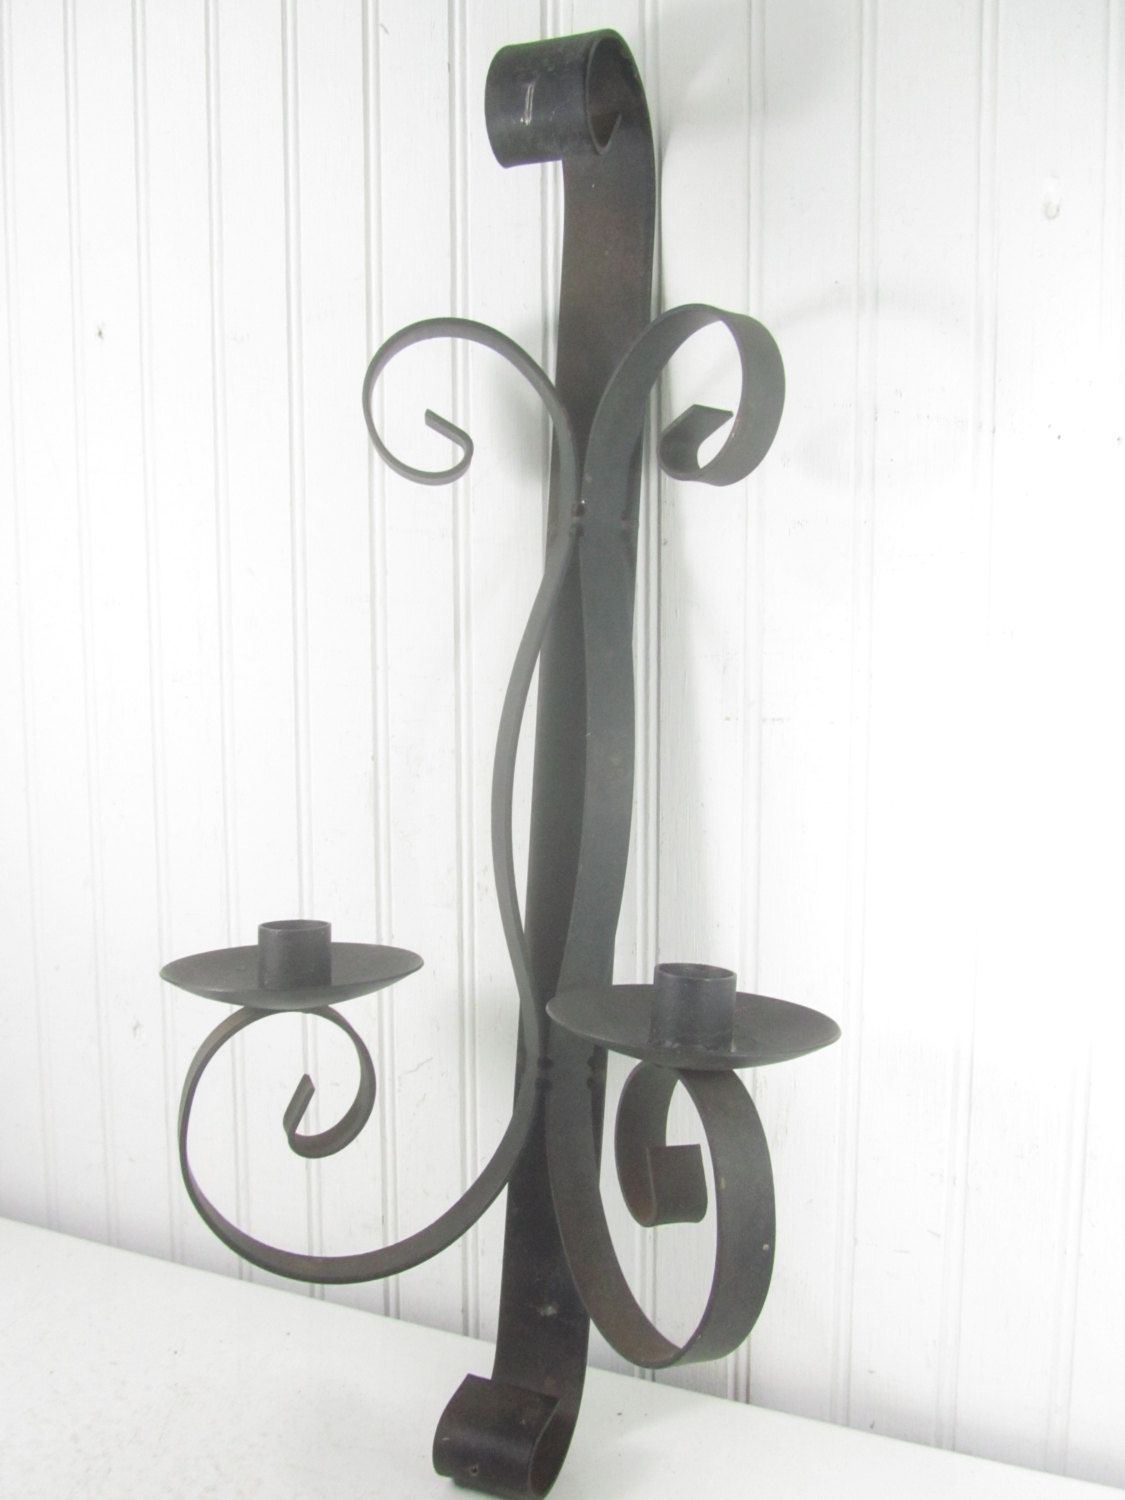 Wrought Iron Candle Holder, Candle Sconce, Metal Candle Holder, Candle Holder, Candle Stick, by KarensChicNShabby on Etsy